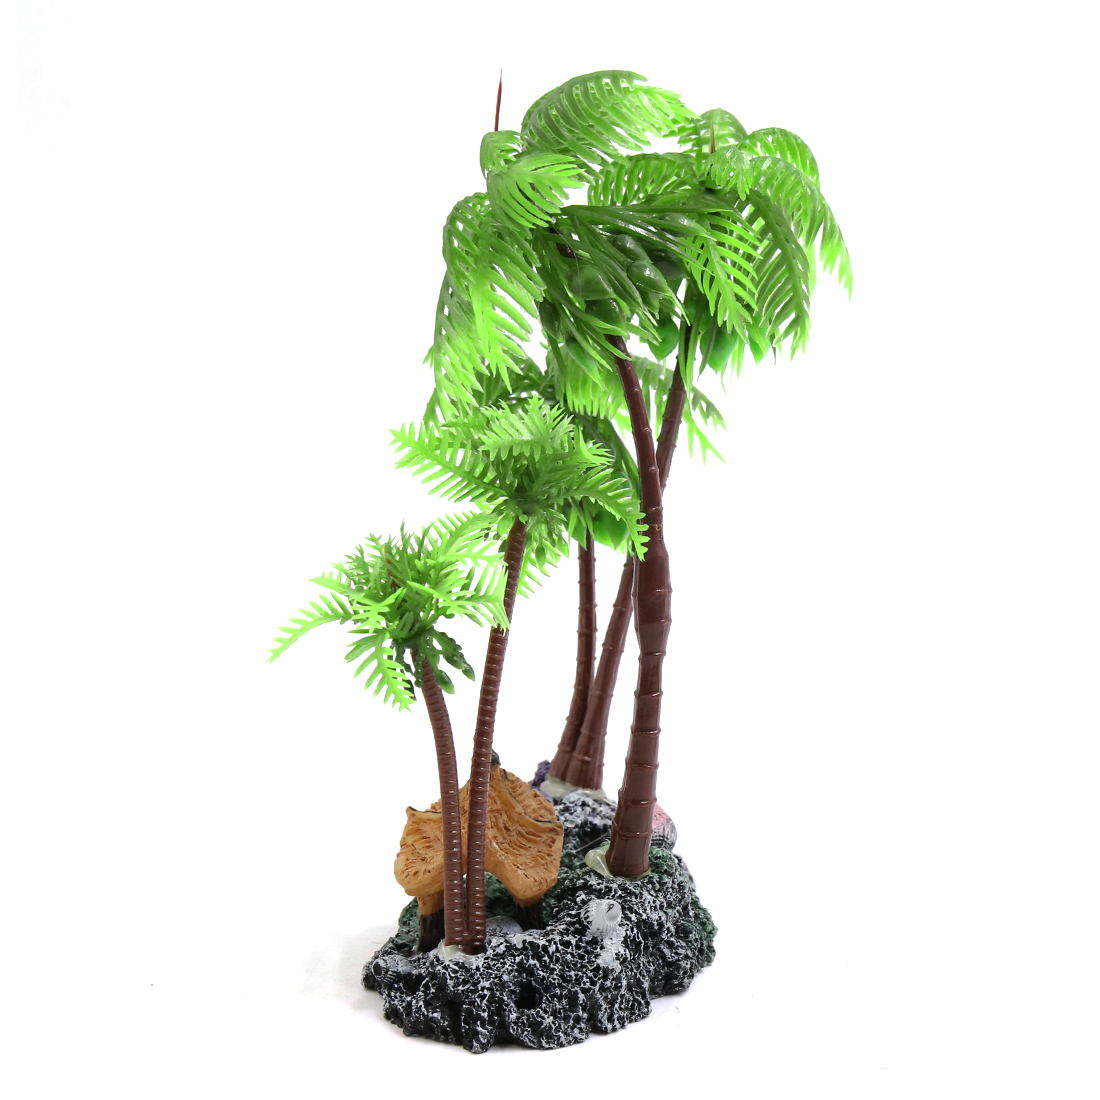 Green Plastic Coconut Tree Aquarium Aquascape Plant Decoration w/ Resin Base - image 1 of 4